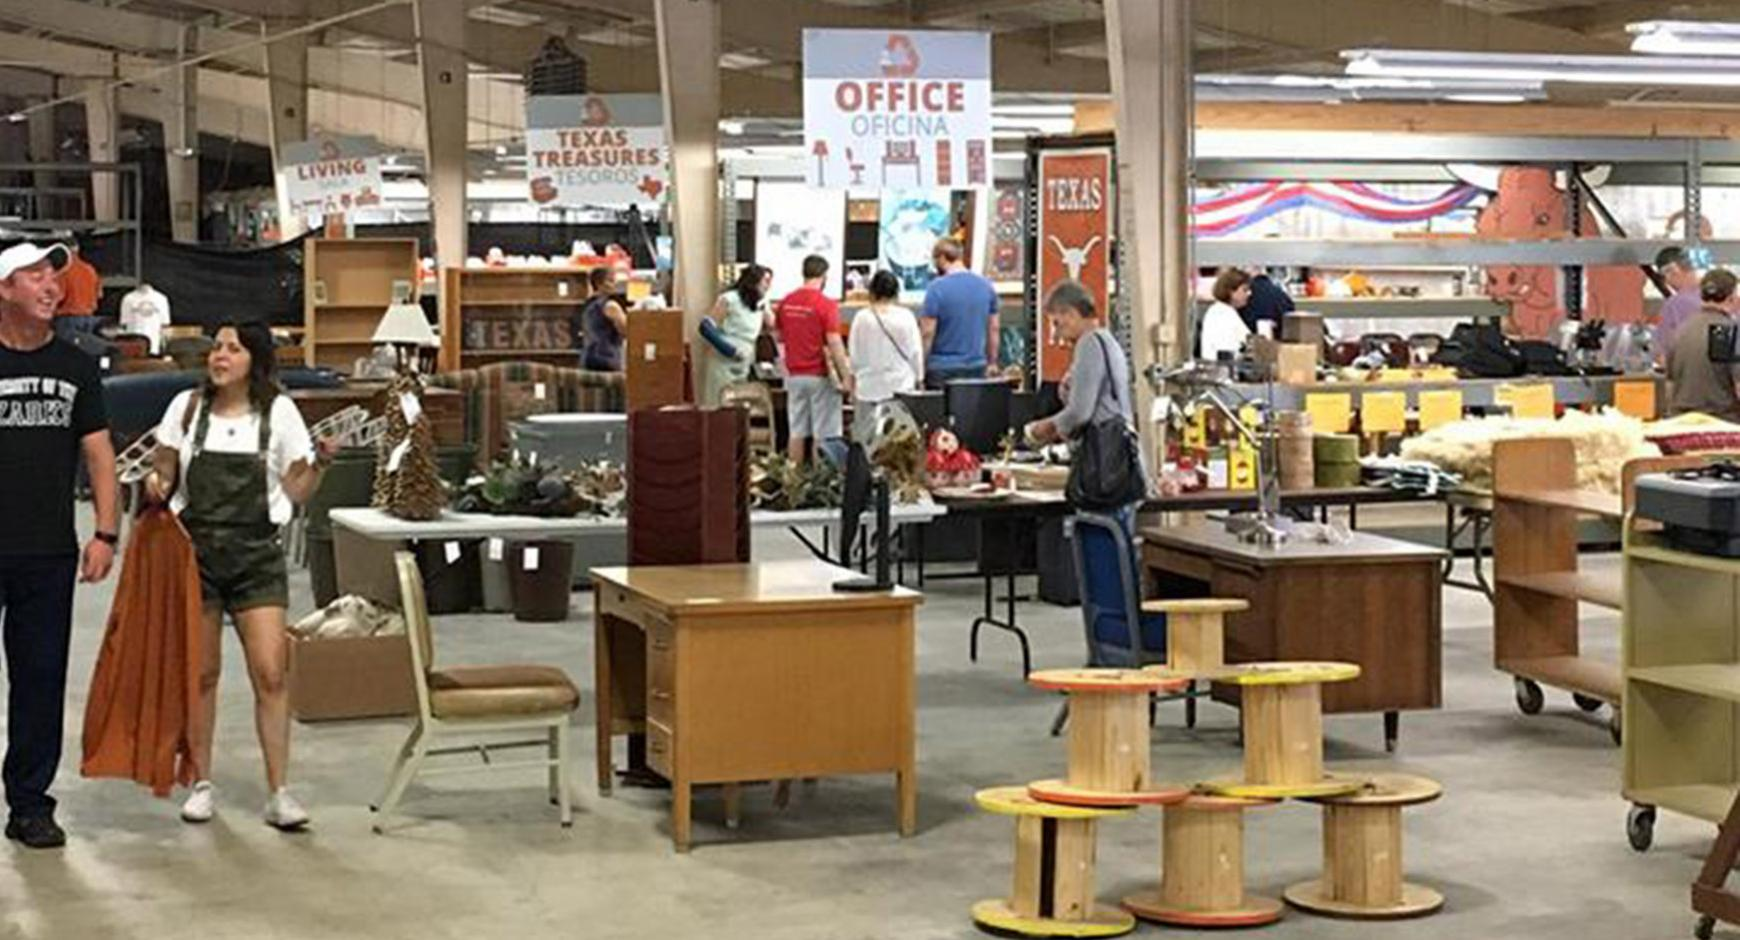 UT Austin's Surplus Store at PRC